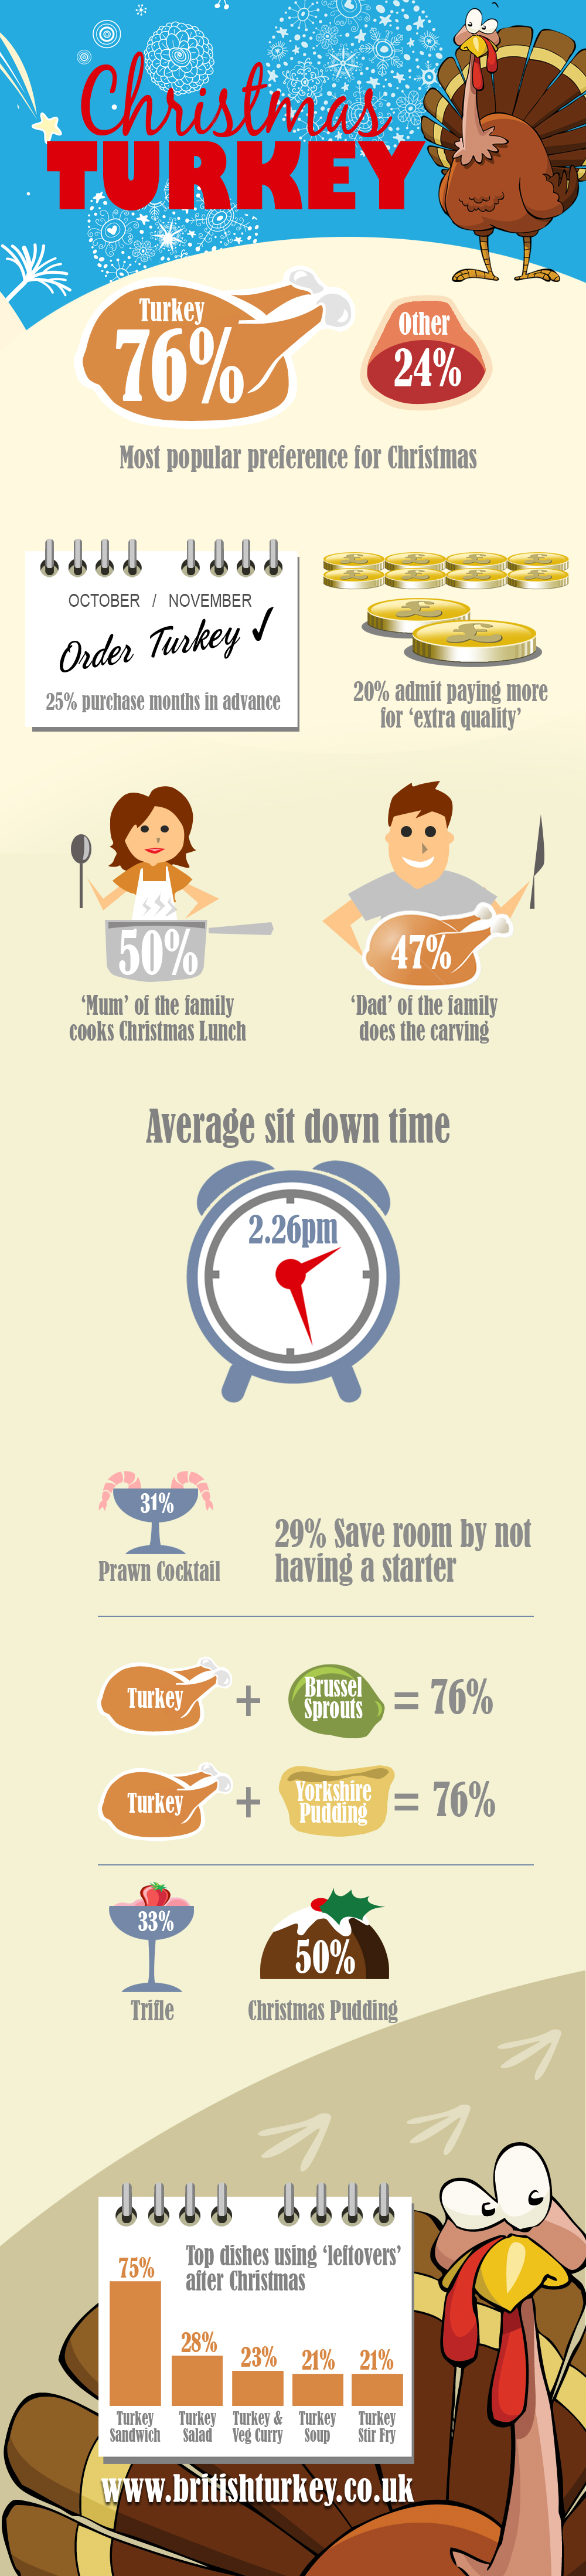 Christmas Turkey Facts | Infographic